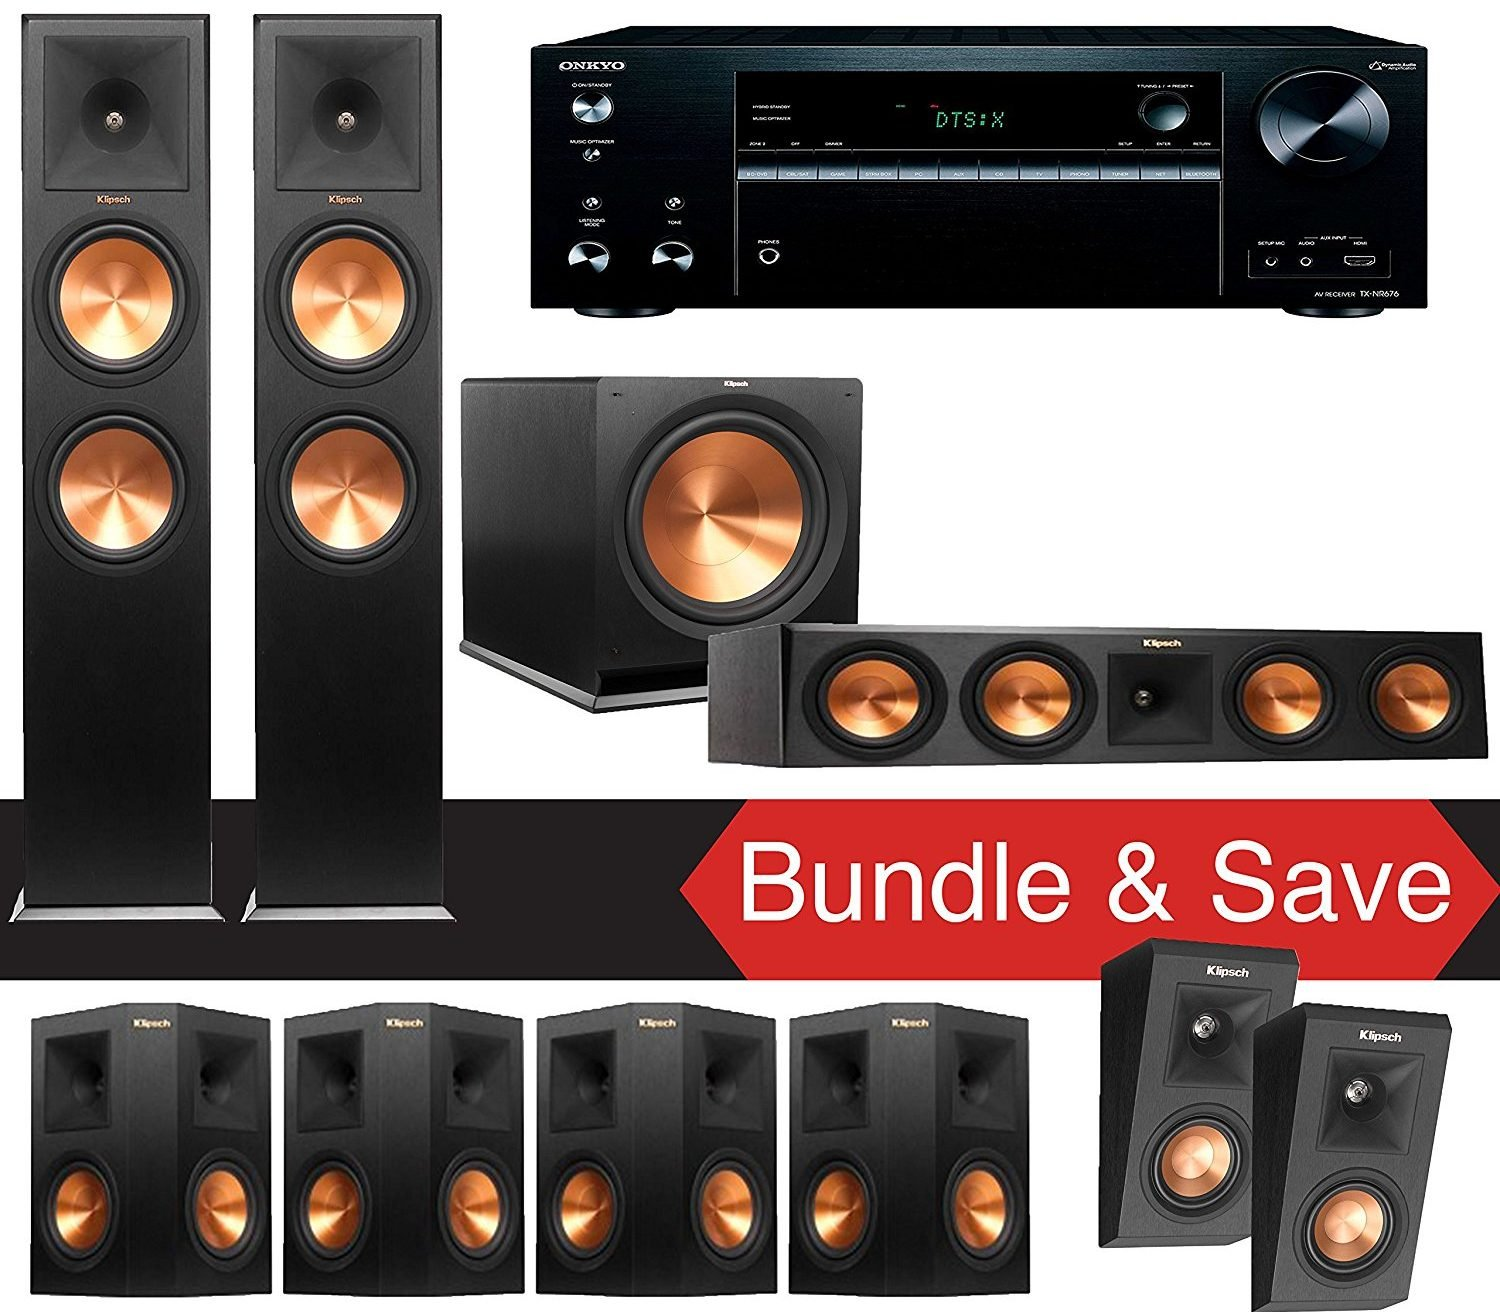 Best Surround Sound Systems To Buy For Fathers Day Avs Forum 1 Set System Go All Out And Get Dad A Full This From Klipsch Includes Two Rp 280f Floorstanding Loudspeakers Four 250s Speakers